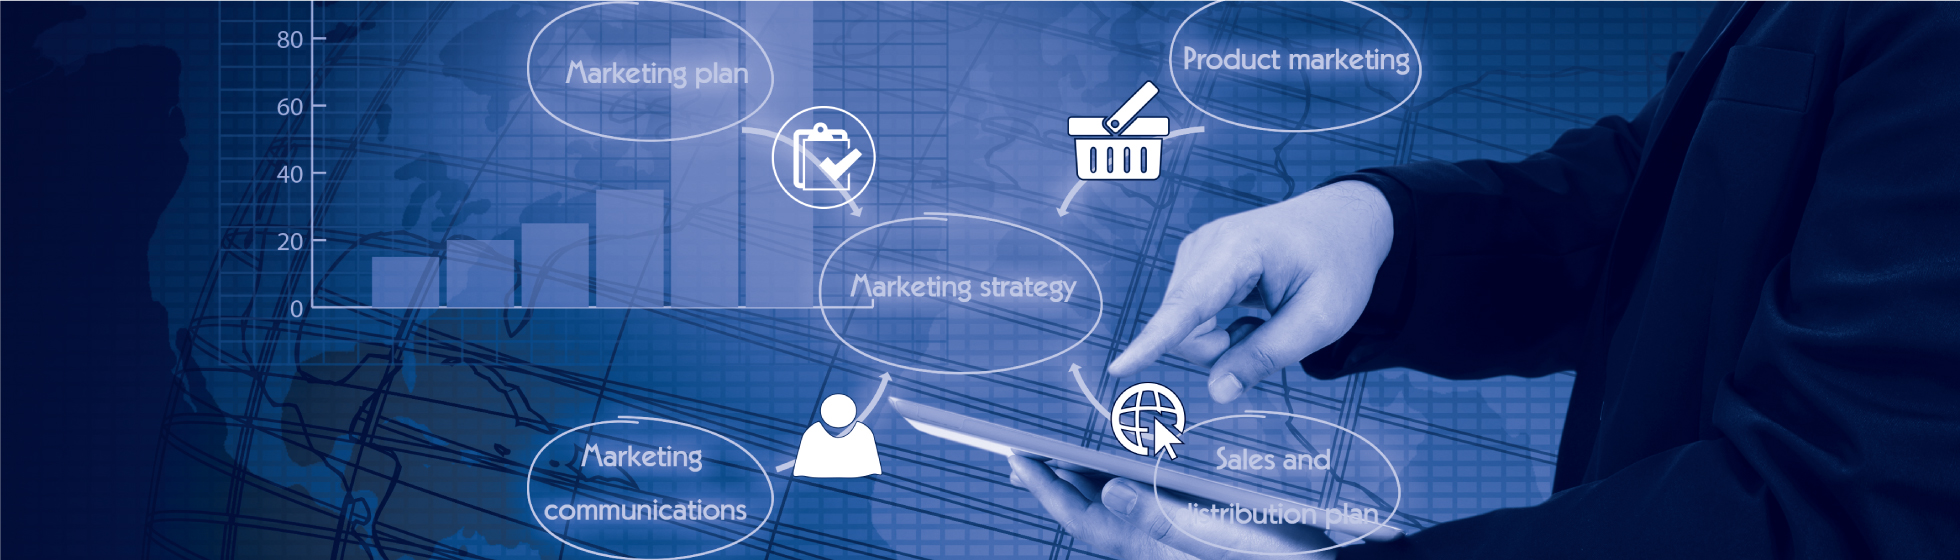 marketing strategy in a nutshell showing marketing communications product marketing and sales and distribution plan